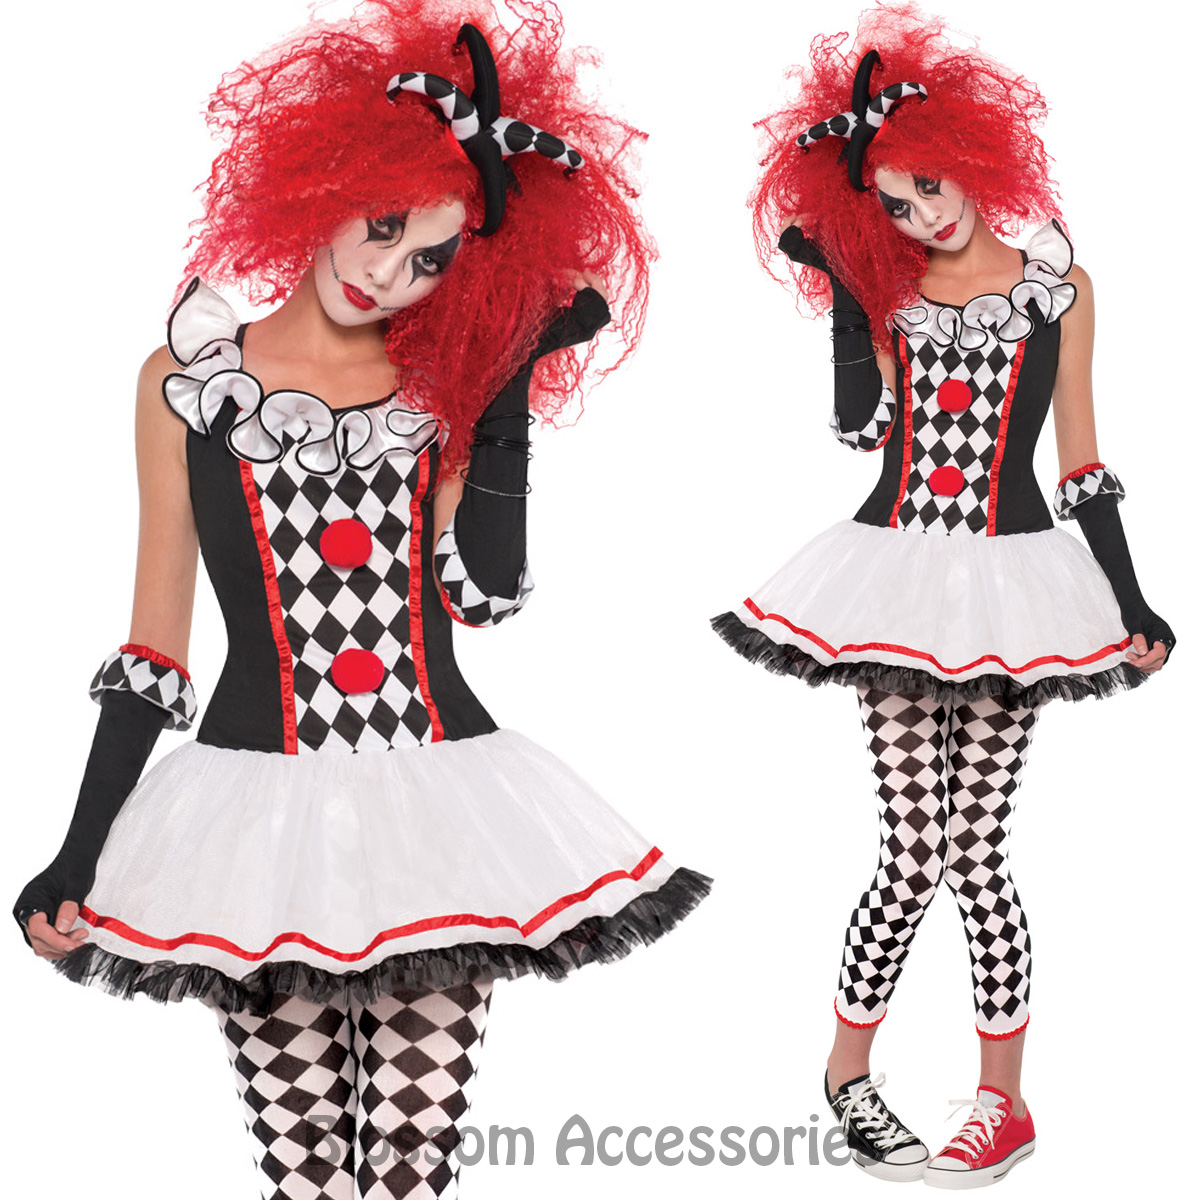 K250-Ladies-Circus-Cirque-Clown-Jester-Dress-Up-Zombie-Halloween-Costume-Outfit